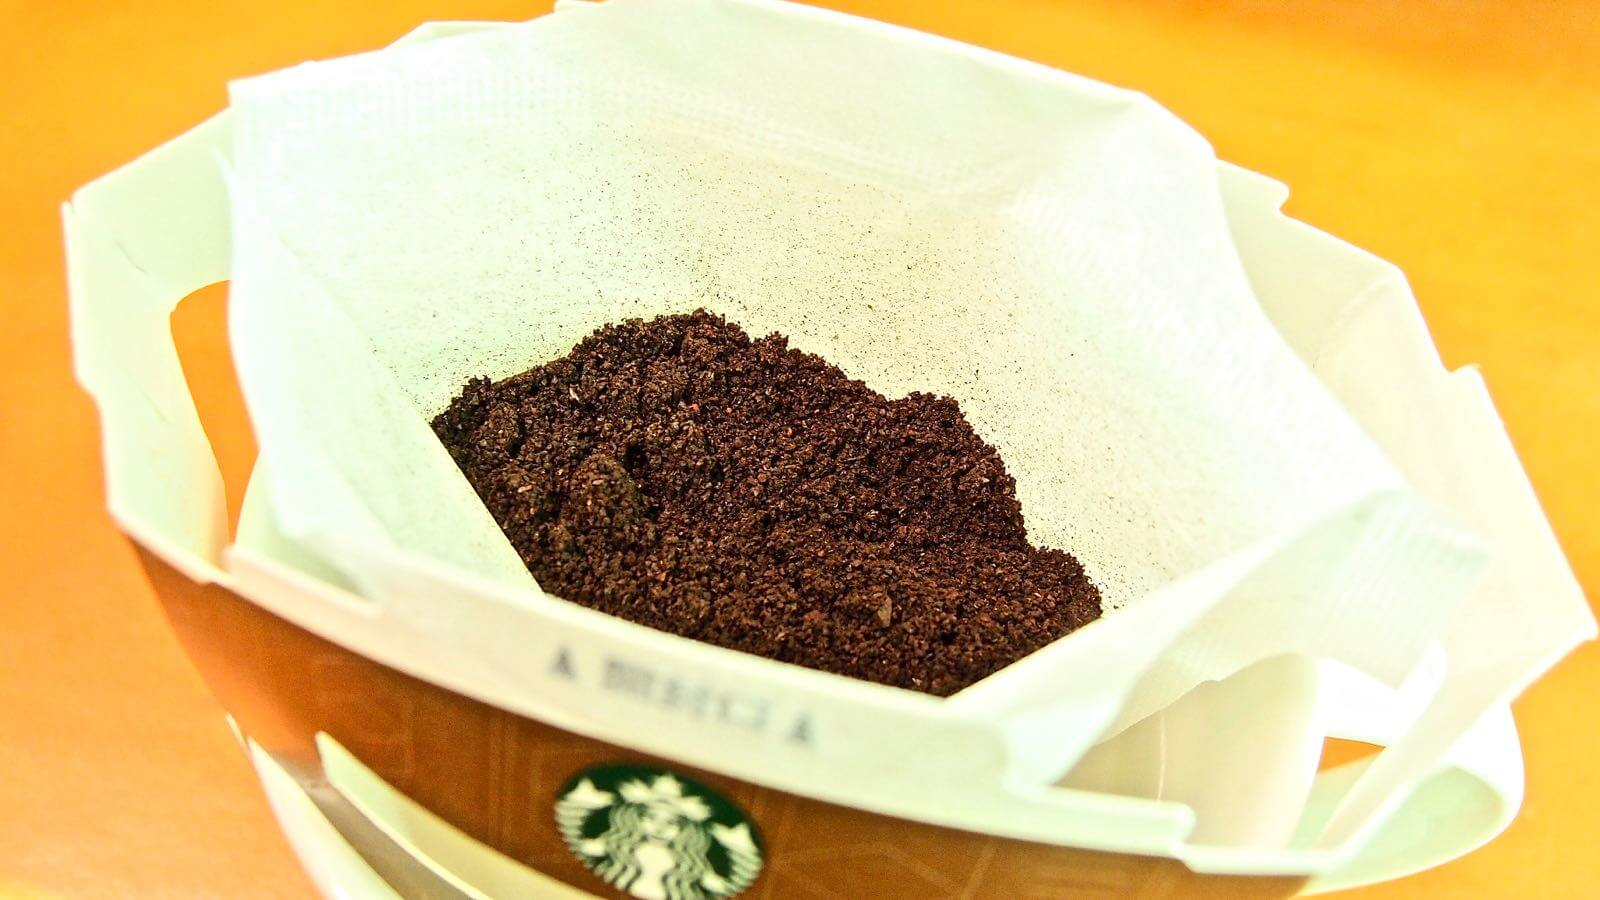 0014 Starbucks Stainless Dripper How to make delicious coffee 05